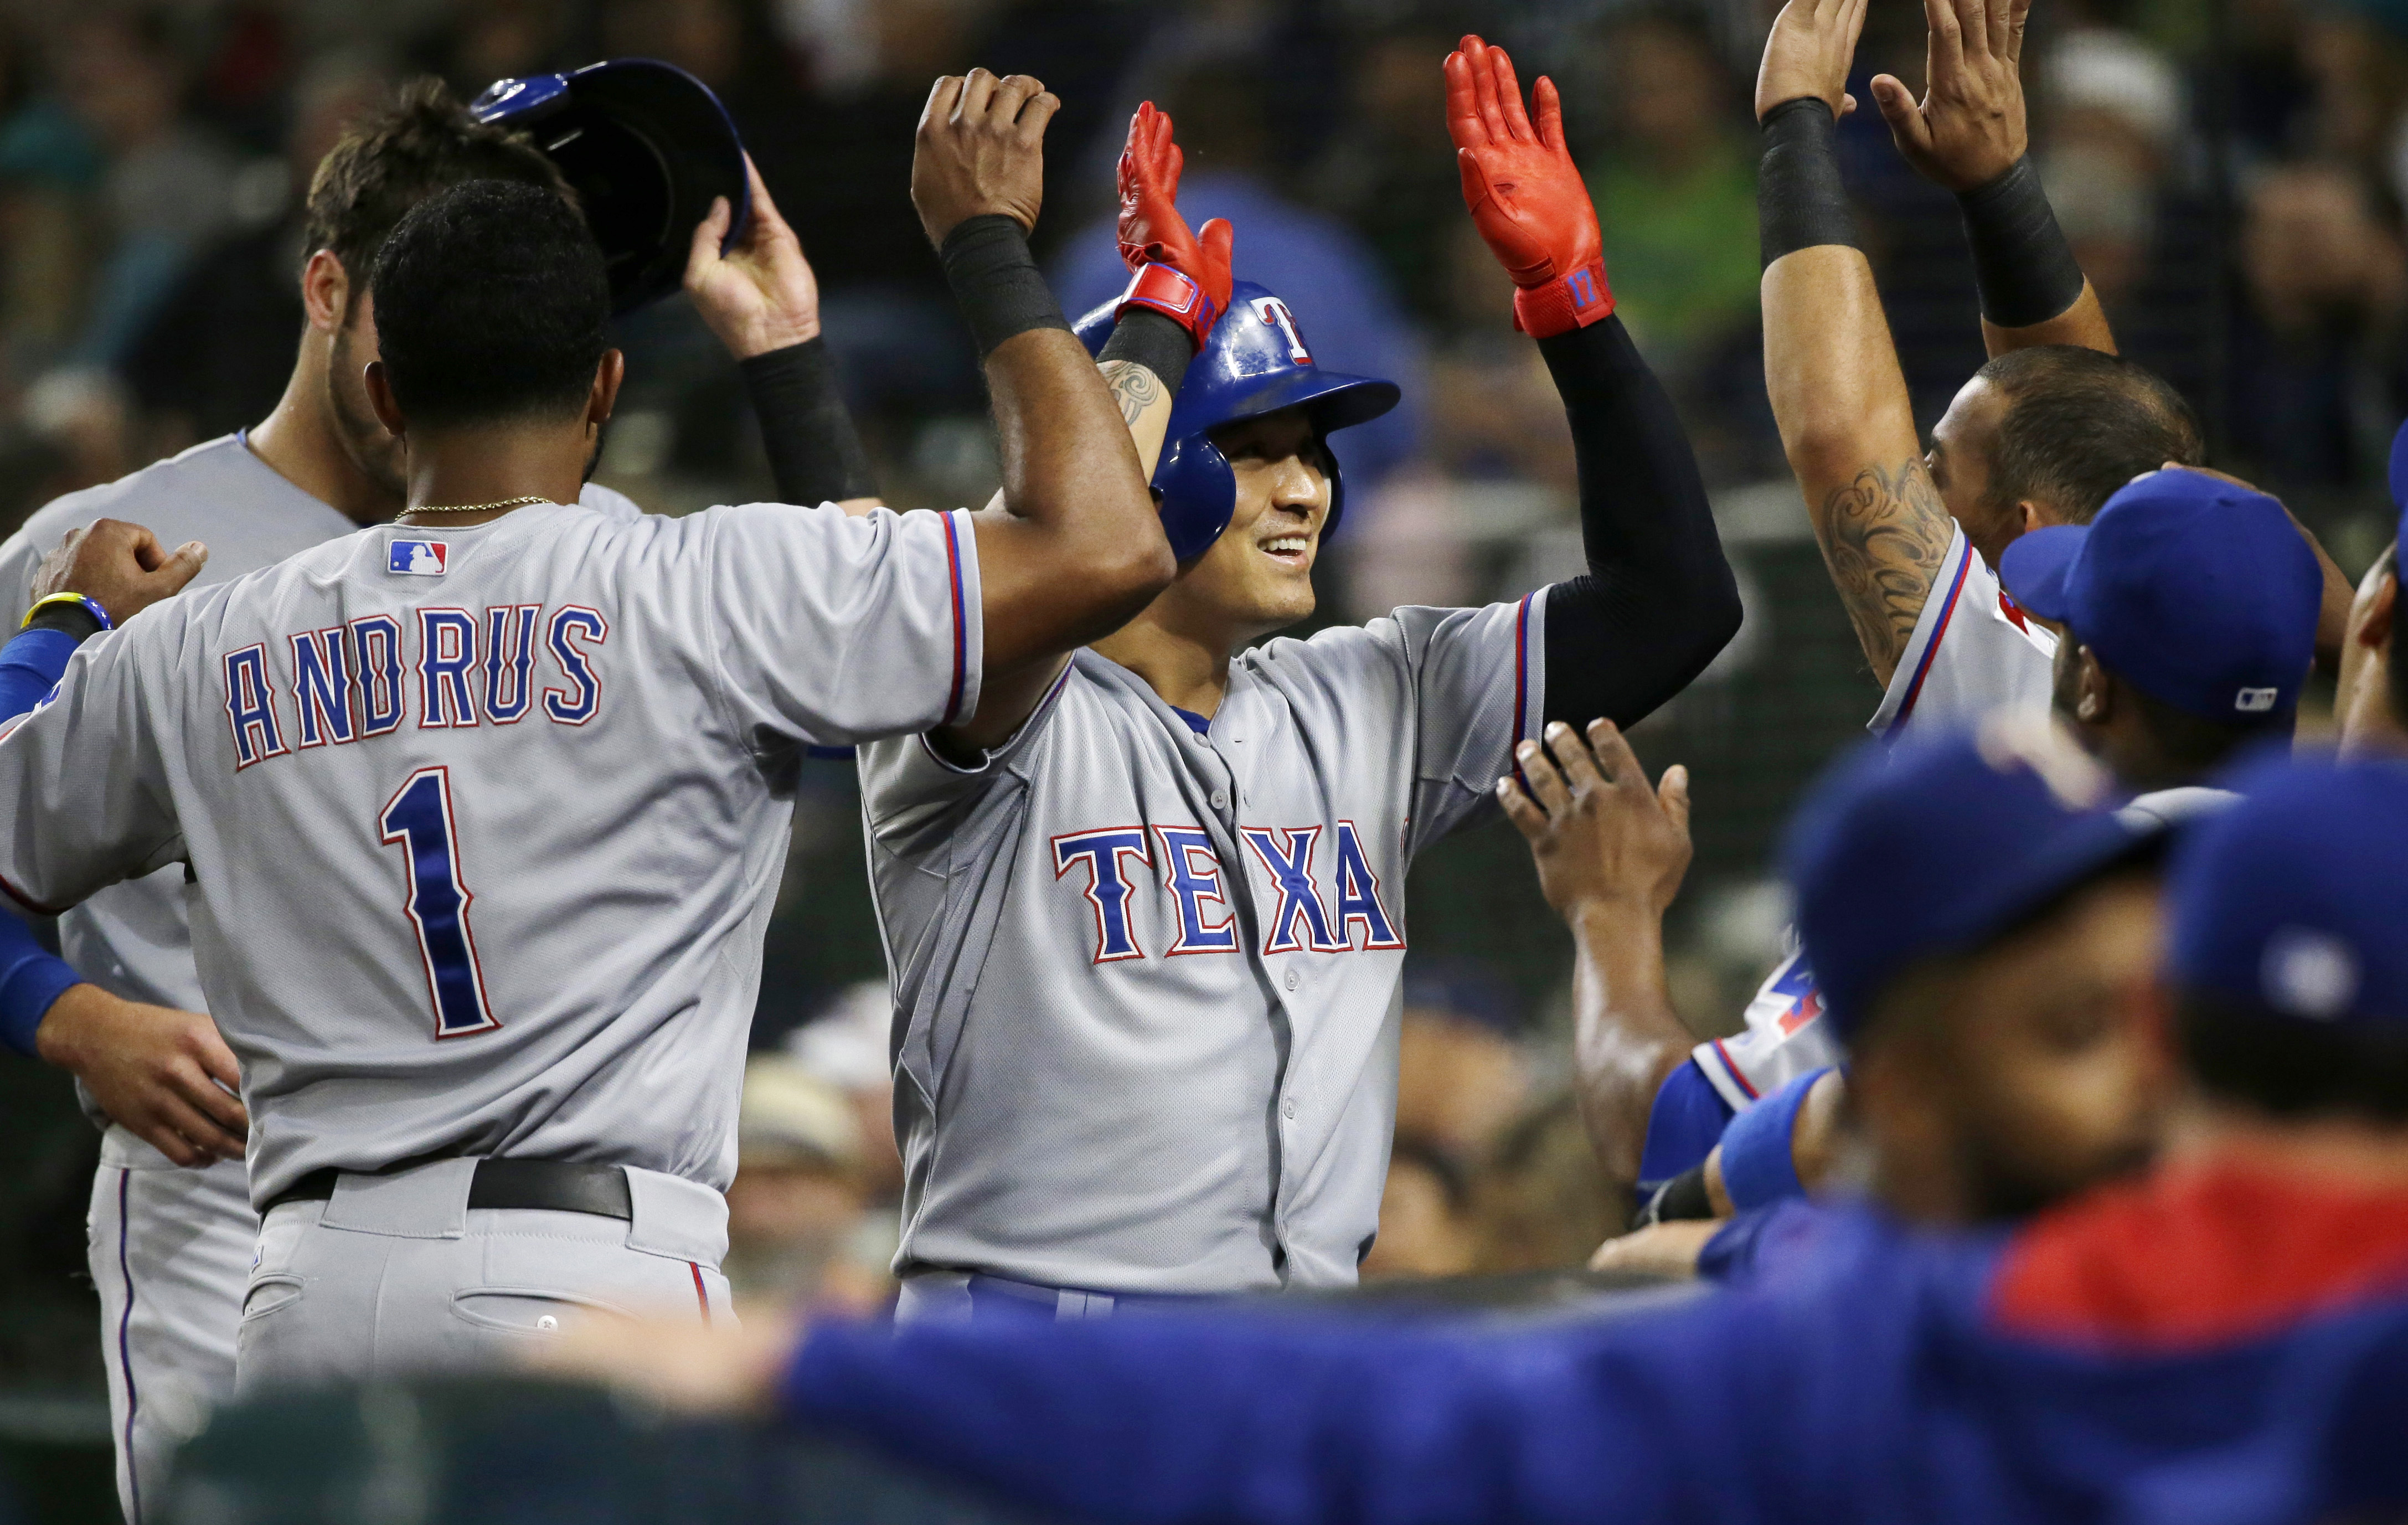 Texas Rangers' Shin-Soo Choo, center, is greeted at the dugout after he hit a three-run home run during the third inning of a baseball game against the Seattle Mariners, Tuesday, Sept. 8, 2015, in Seattle. (AP Photo/Ted S. Warren)